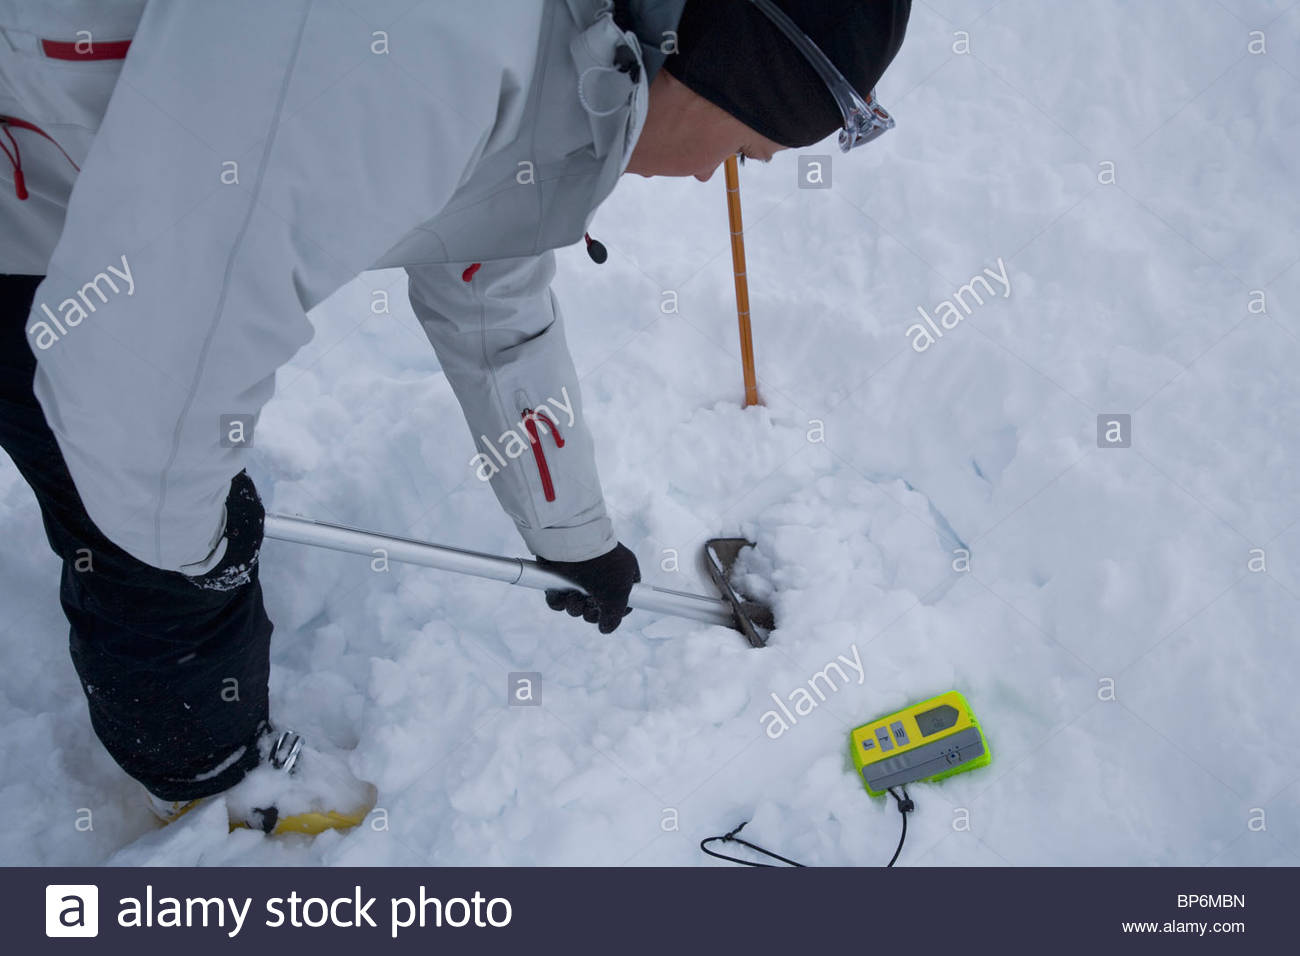 Young woman searching for avalanche victims in snow - Stock Image